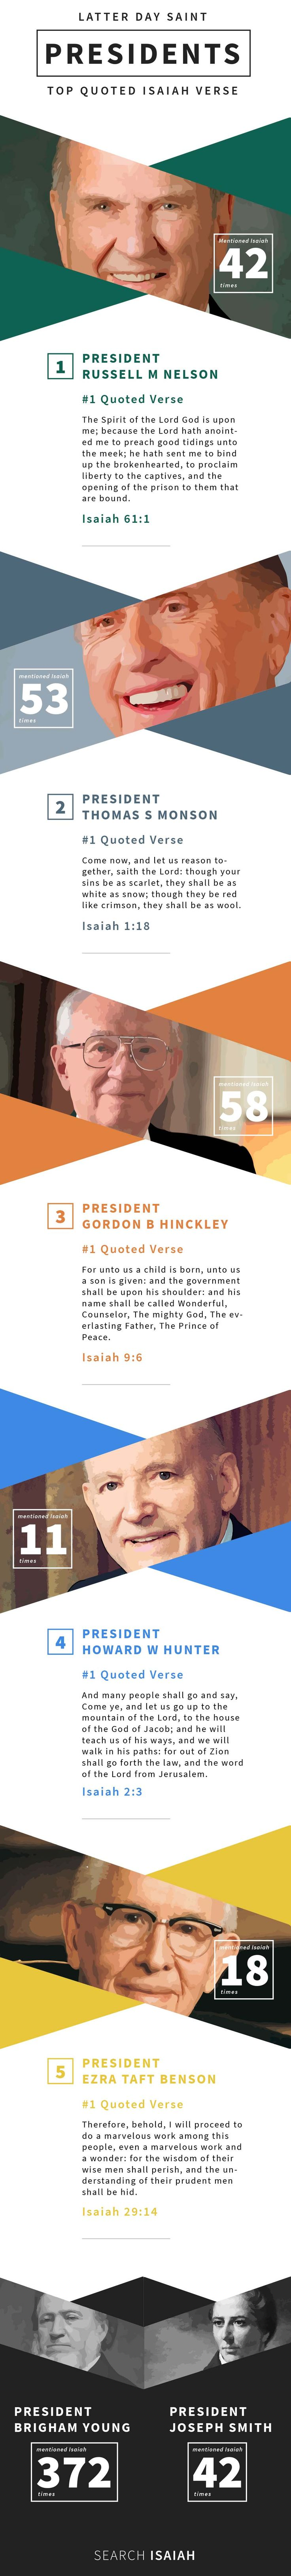 Celebrate President's Day with LDS Prophets favorite Isaiah quotes. #infographicdesign